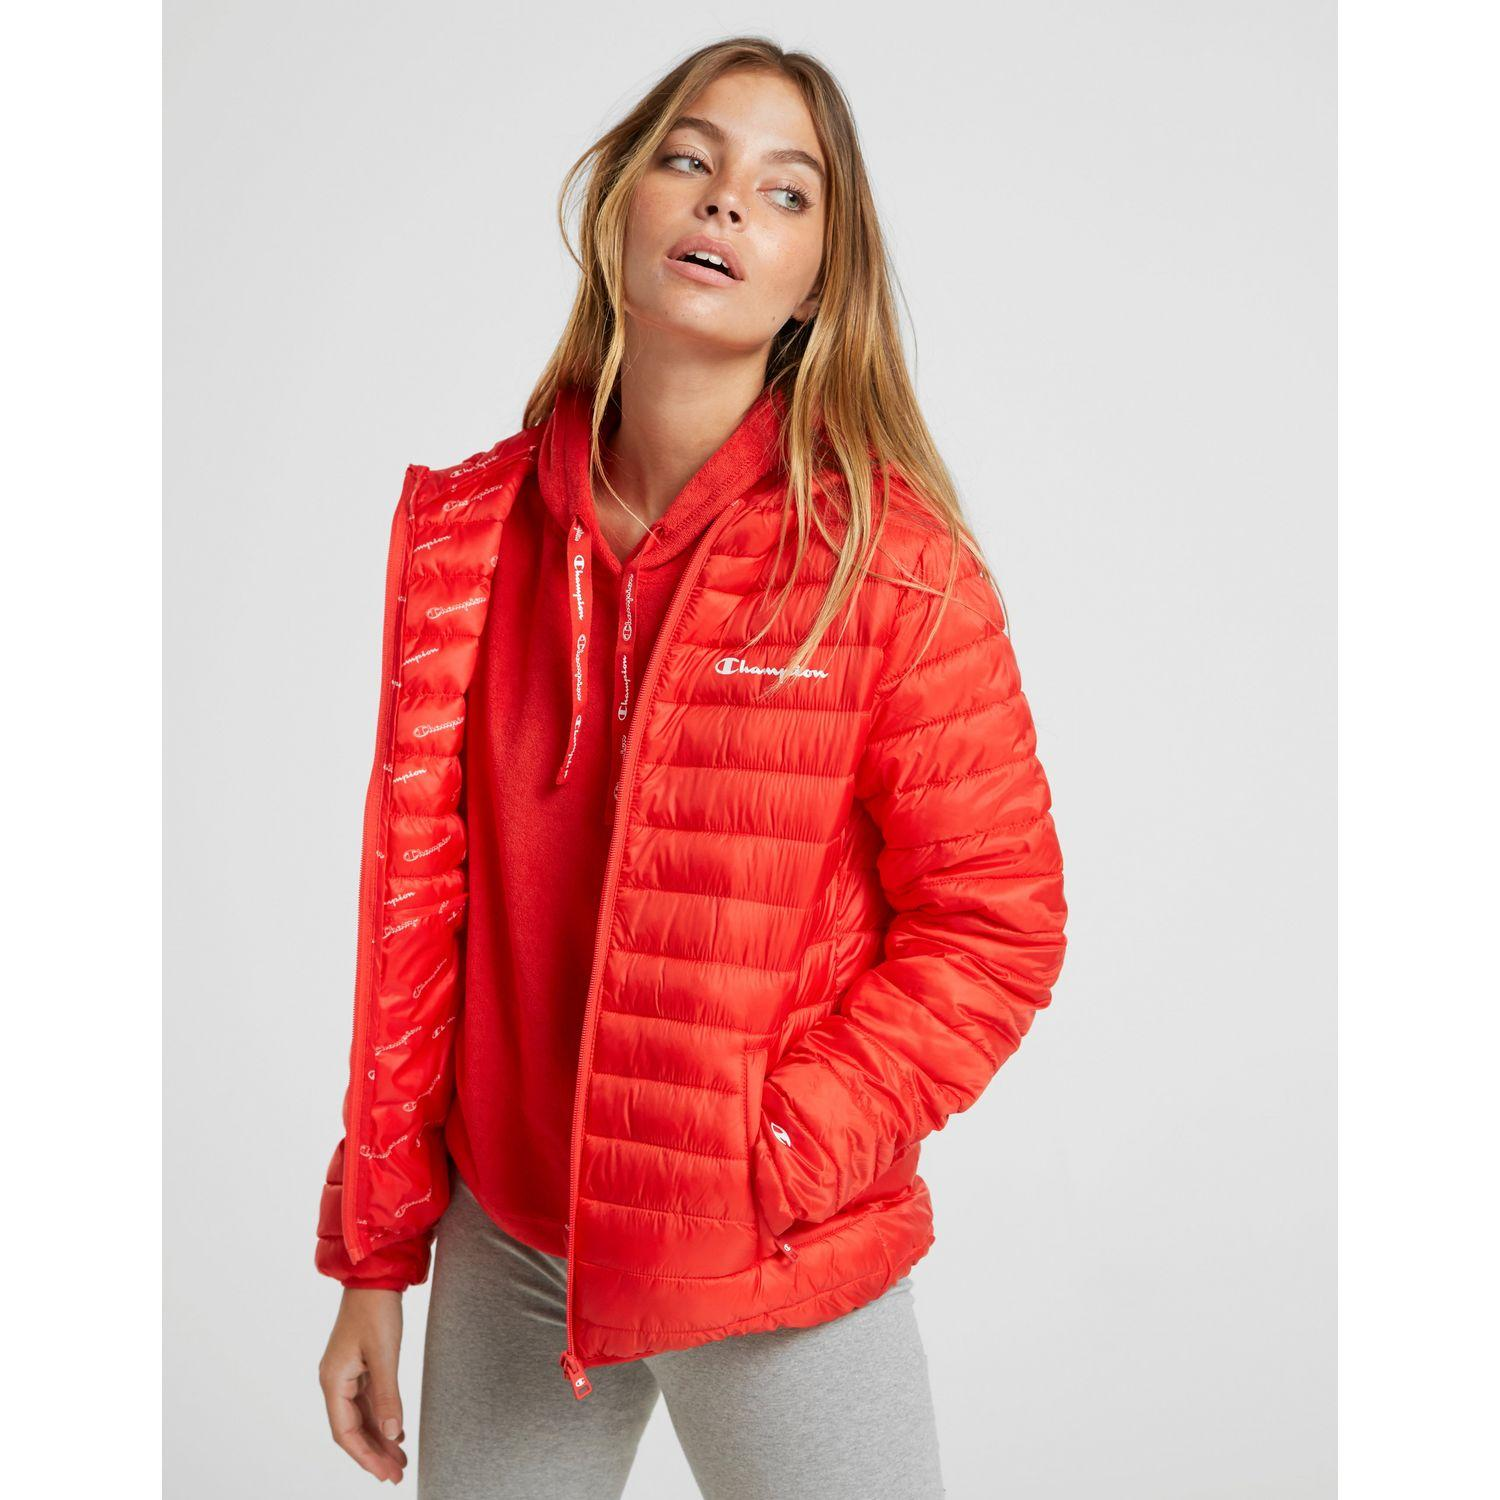 ec4dff09cb Champion Padded Logo All Over Print Reversible Jacket in Red - Lyst